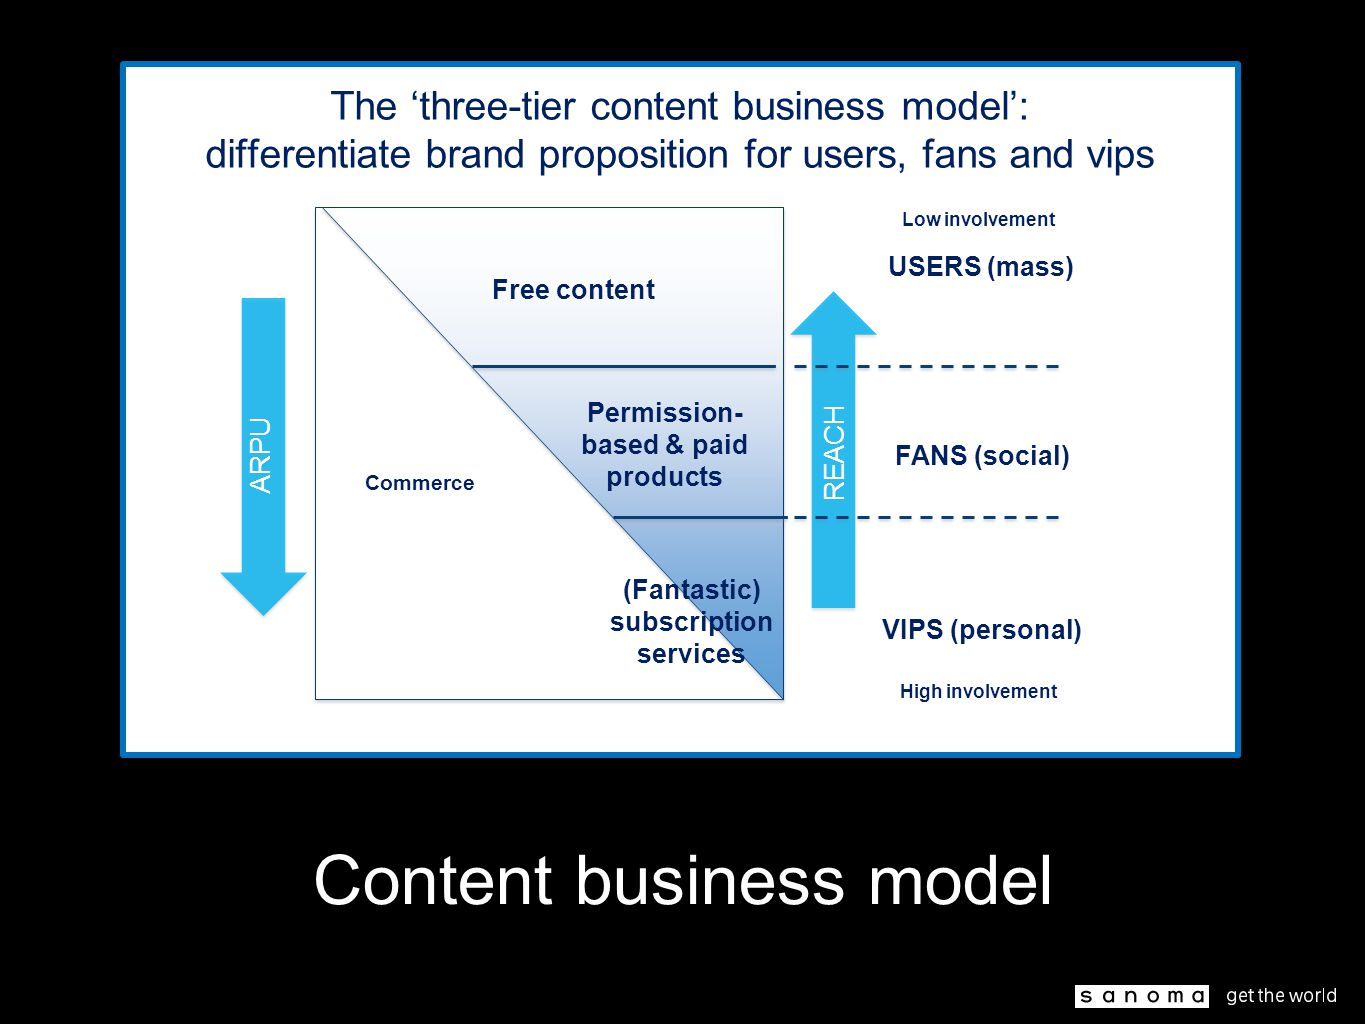 The 'three-tier content business model': differentiate brand proposition for users, fans and vips FANS (social) USERS (mass) VIPS (personal) ARPU REACH Commerce Free content Permission- based & paid products (Fantastic) subscription services Low involvement High involvement Content business model